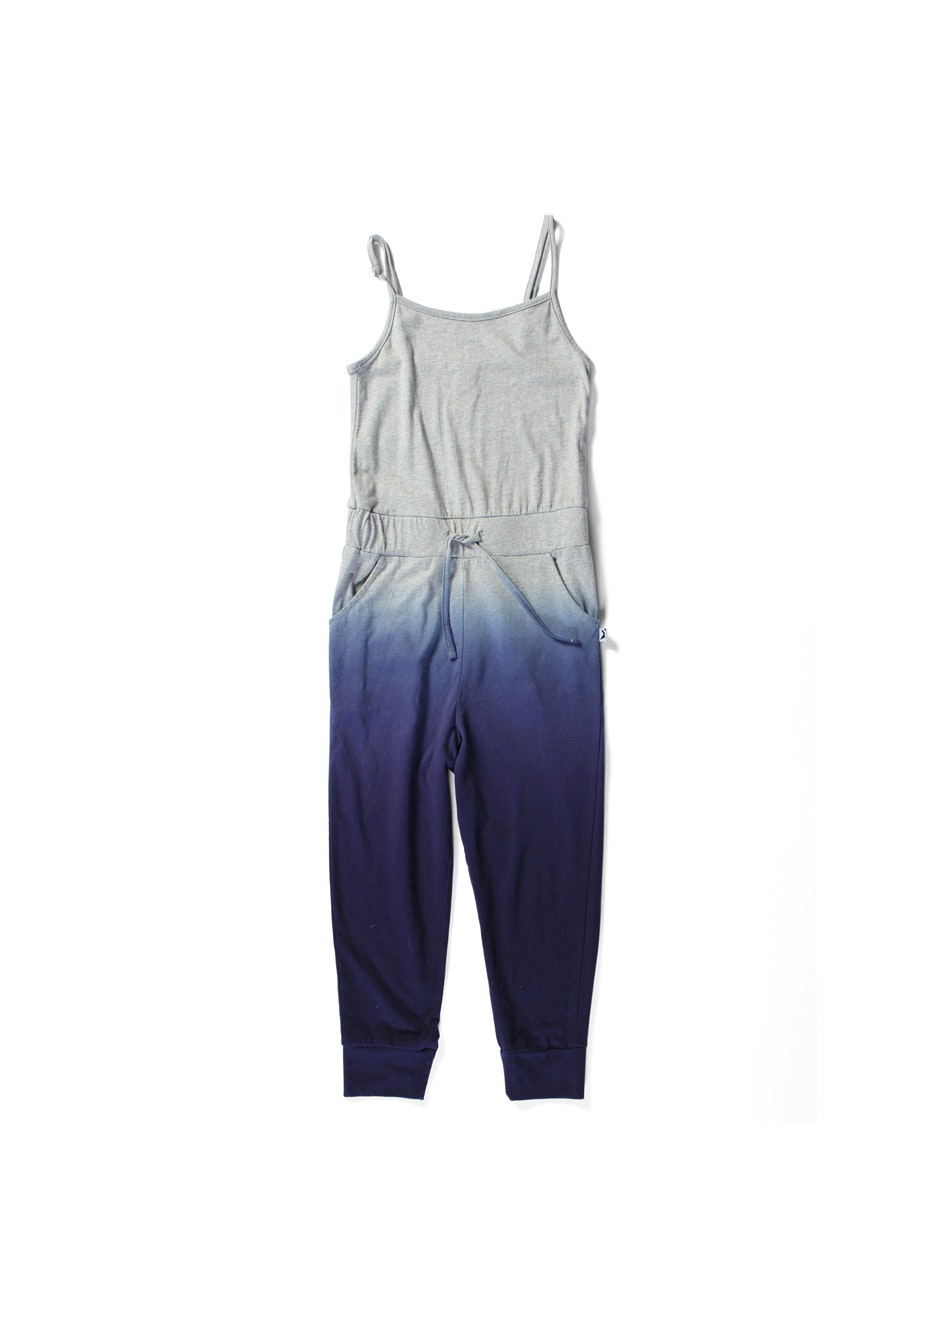 Minti - Dd - Jumpsuit - Girls - Grey